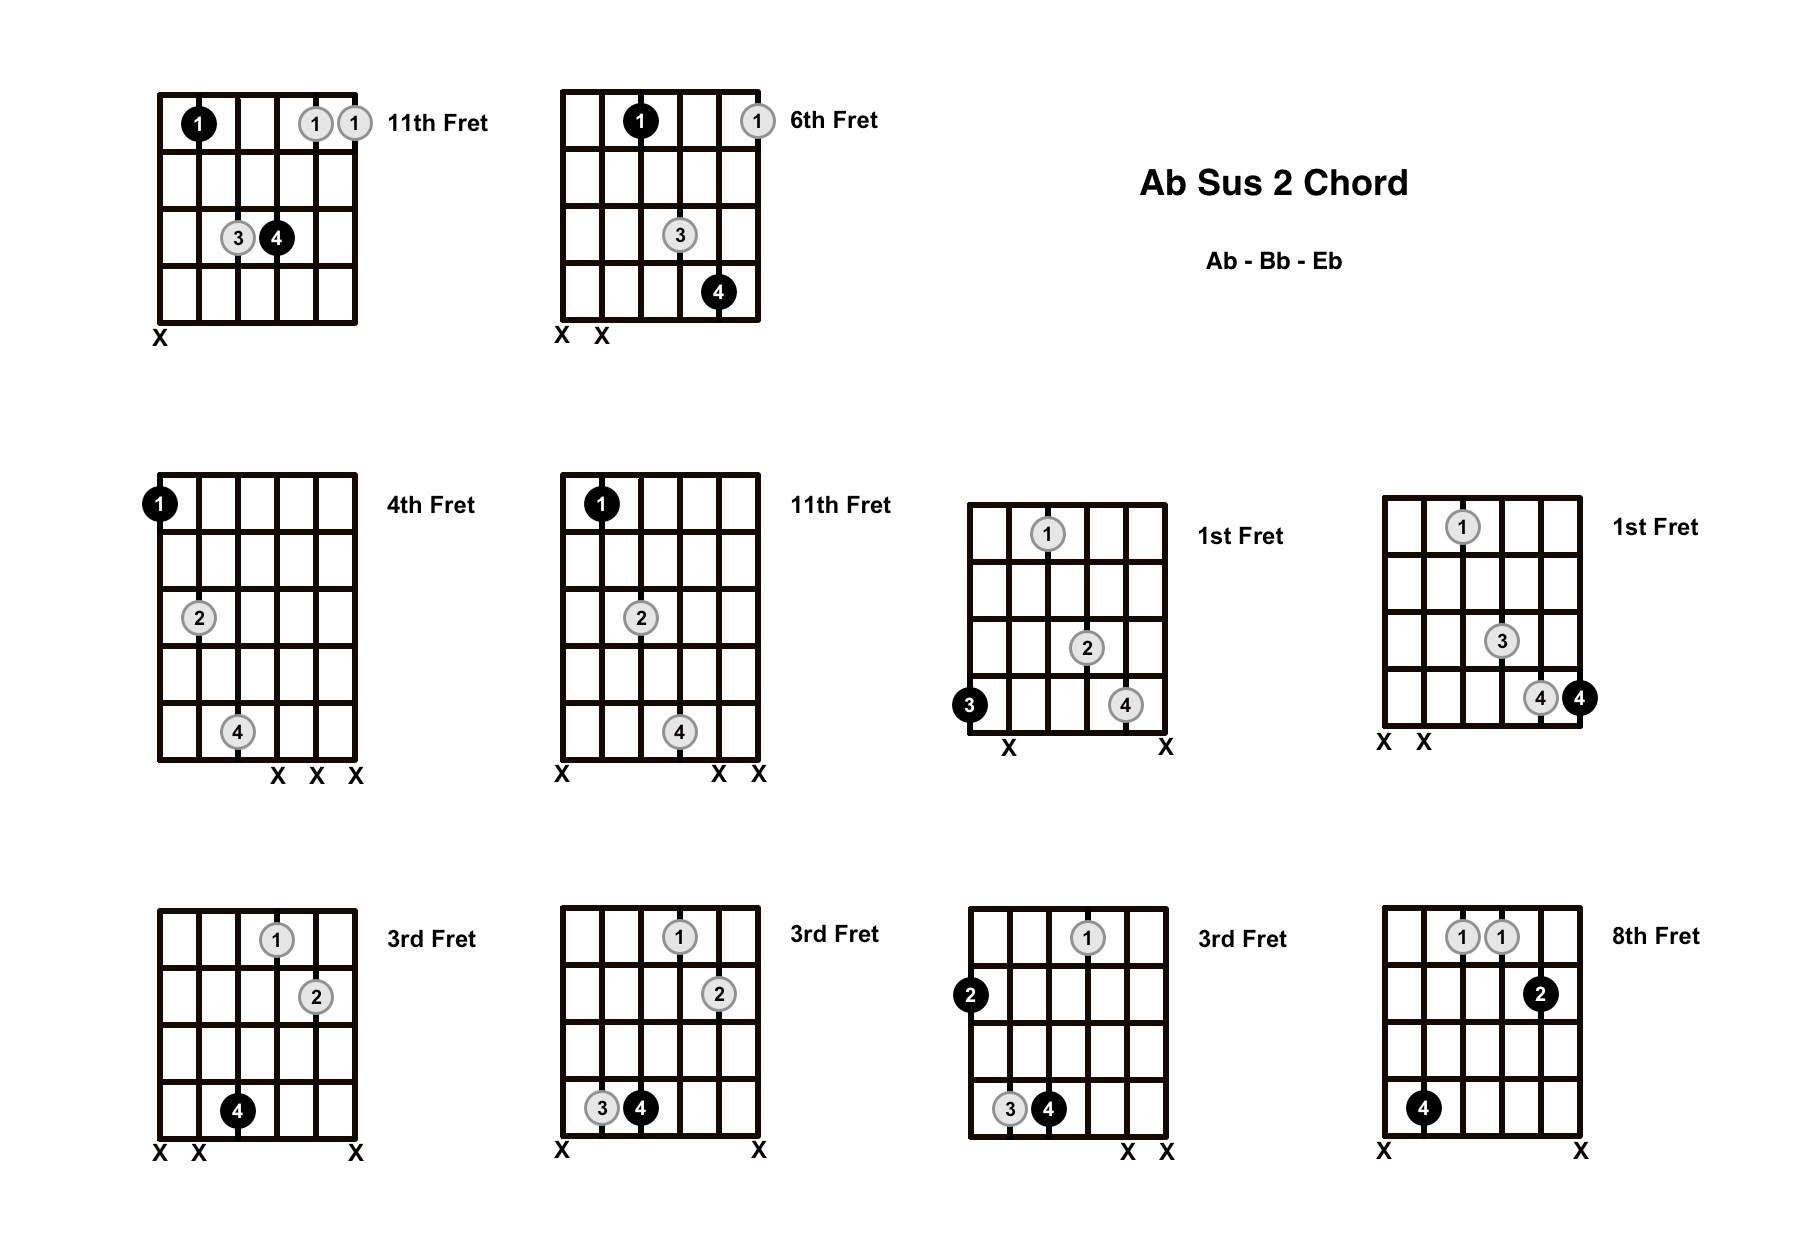 Ab Sus 2 Chord On The Guitar (A Flat Suspended 2) – Diagrams, Finger Positions and Theory